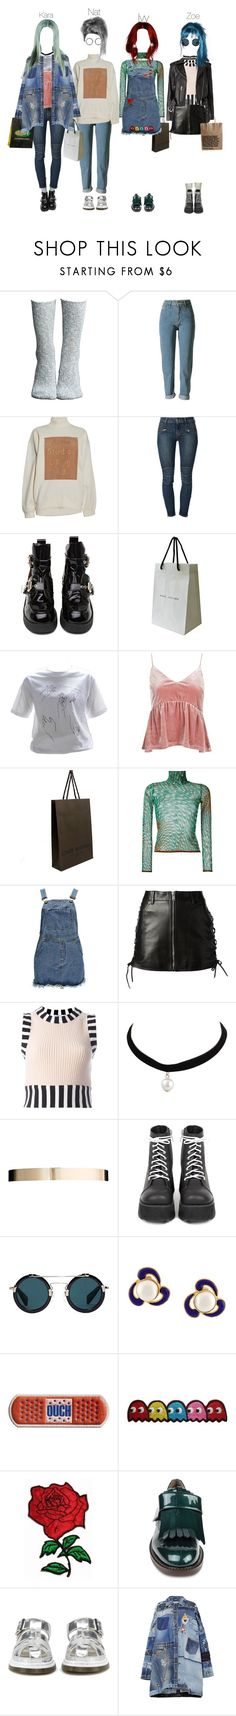 """Input Shopping in Seoul"" by npentertainment ❤ liked on Polyvore featuring Lemon, WithChic, Acne Studios, Koral, Jeffrey Campbell, Marc Jacobs, Topshop, Louis Vuitton, Jean-Paul Gaultier and Boohoo"